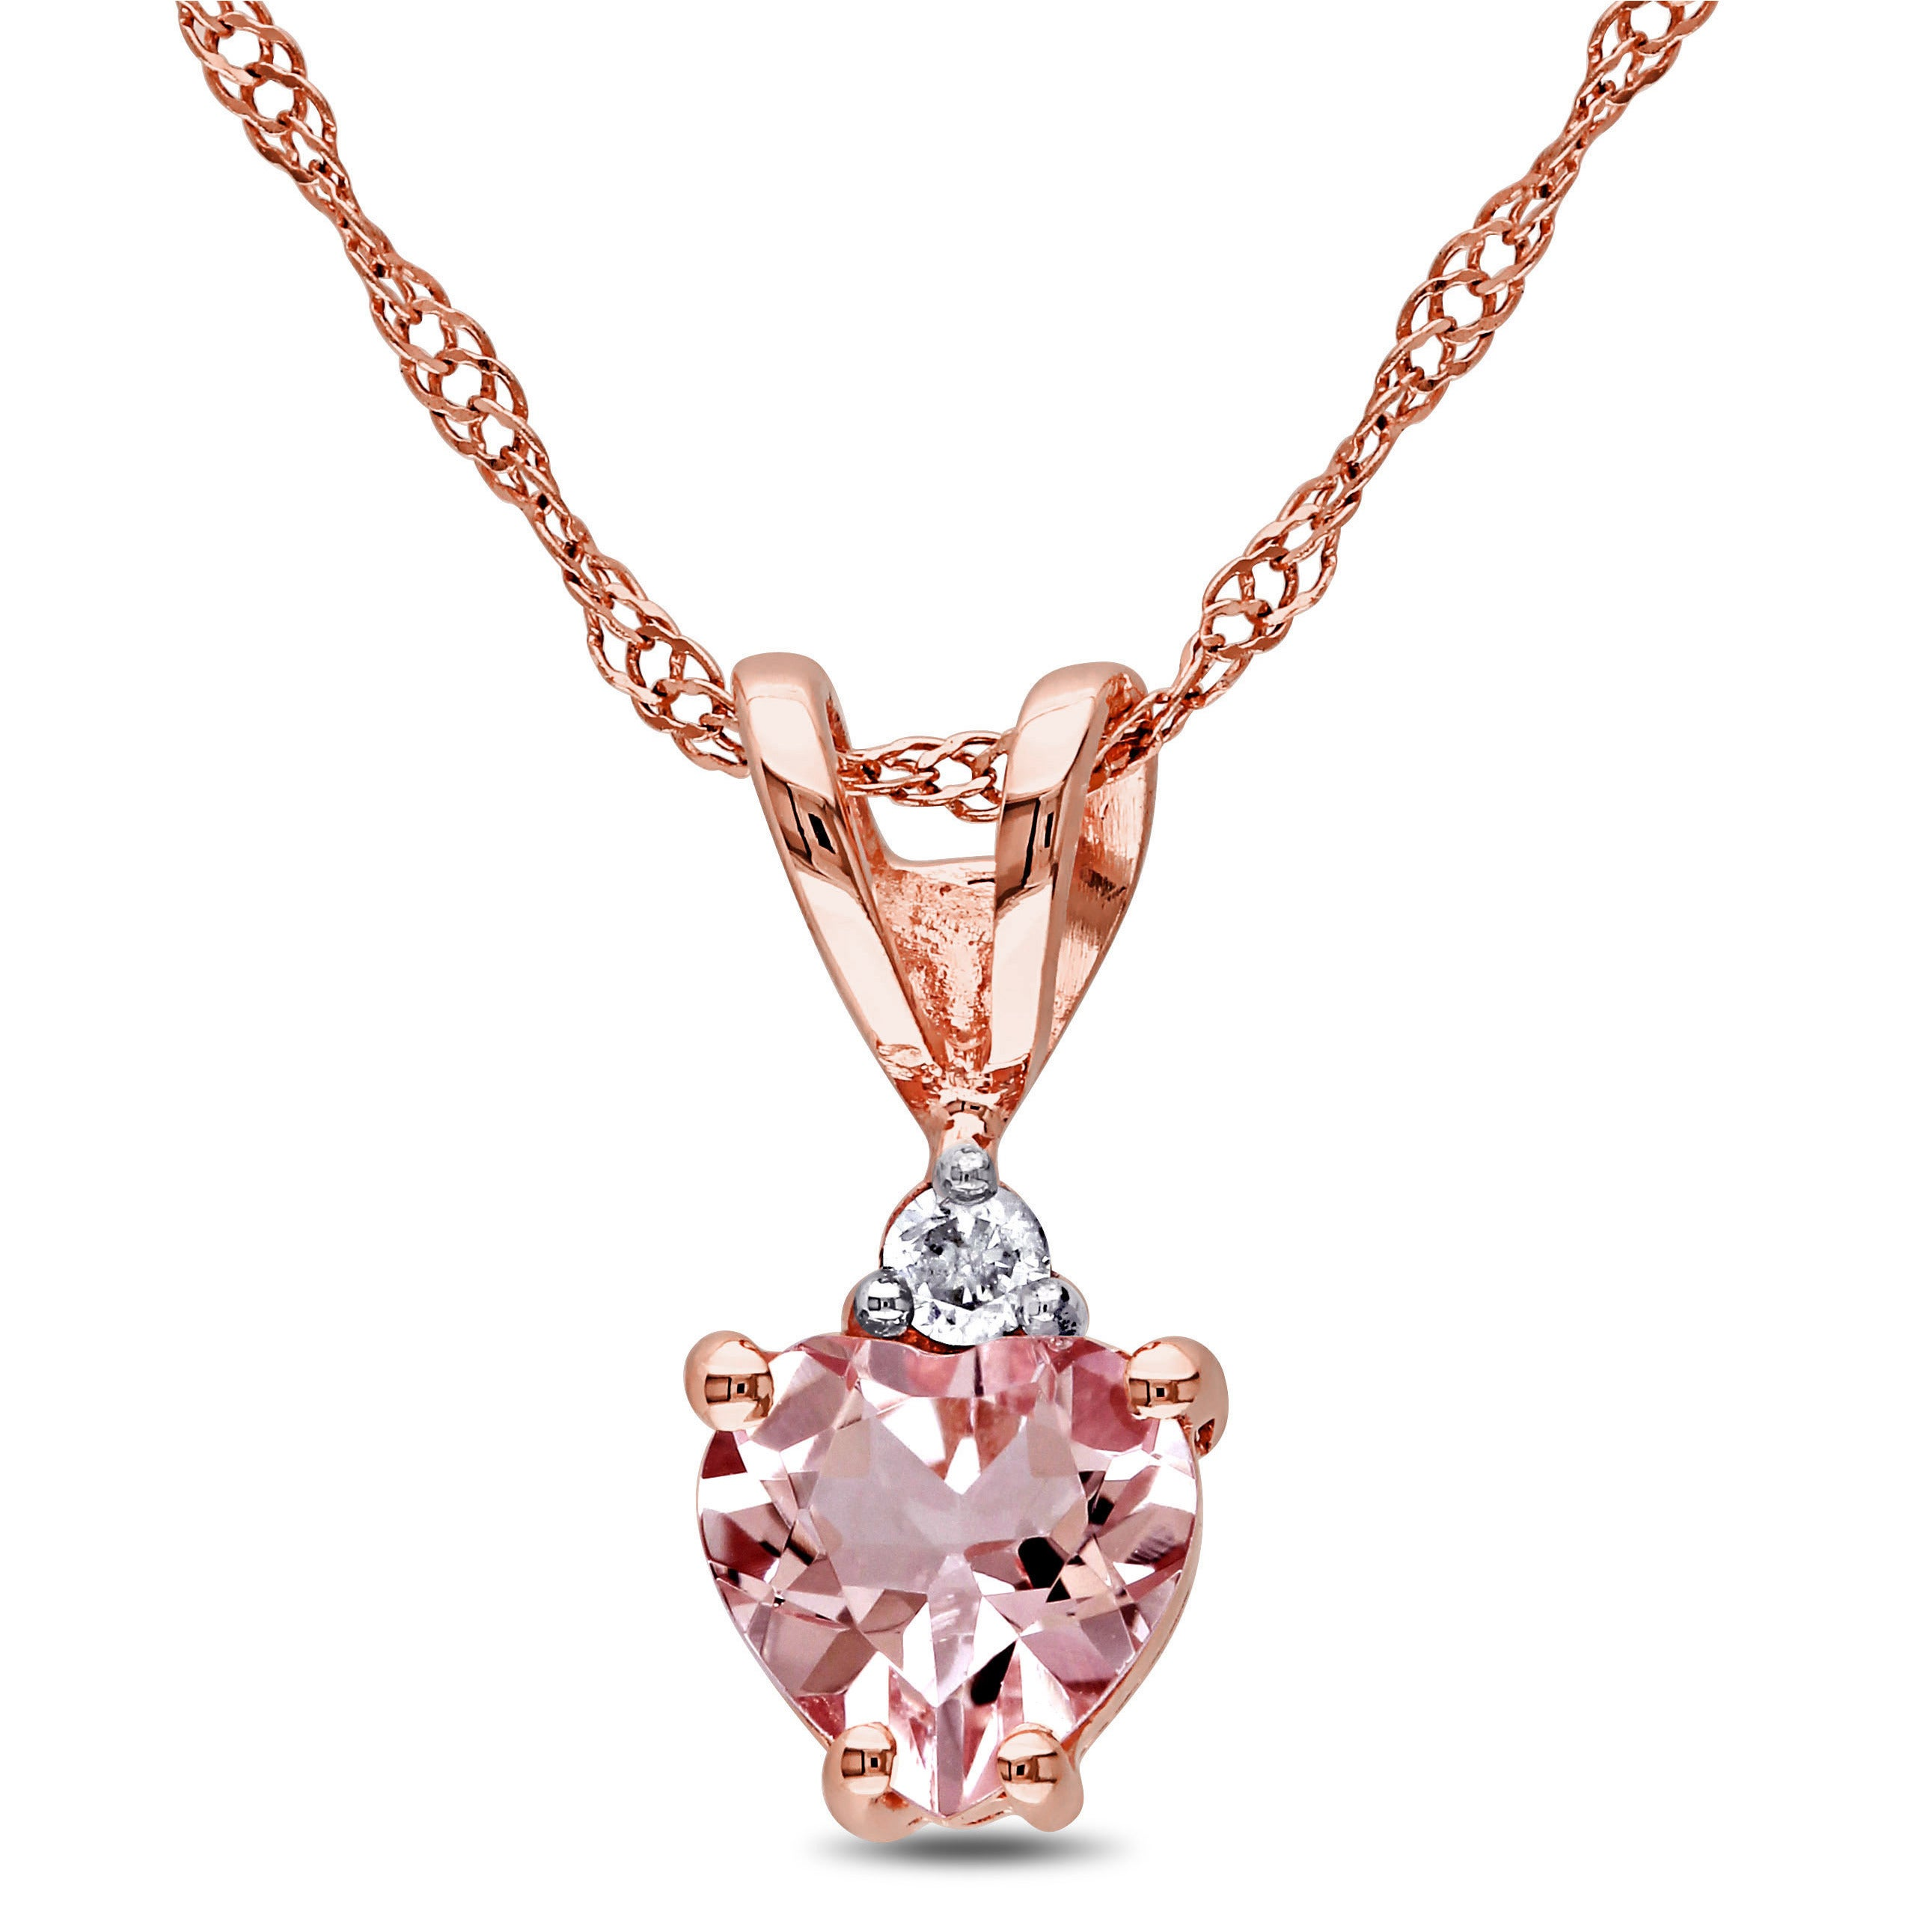 necklace ro and products necklaces jewelry realreal heart me enlarged the diamond pendant